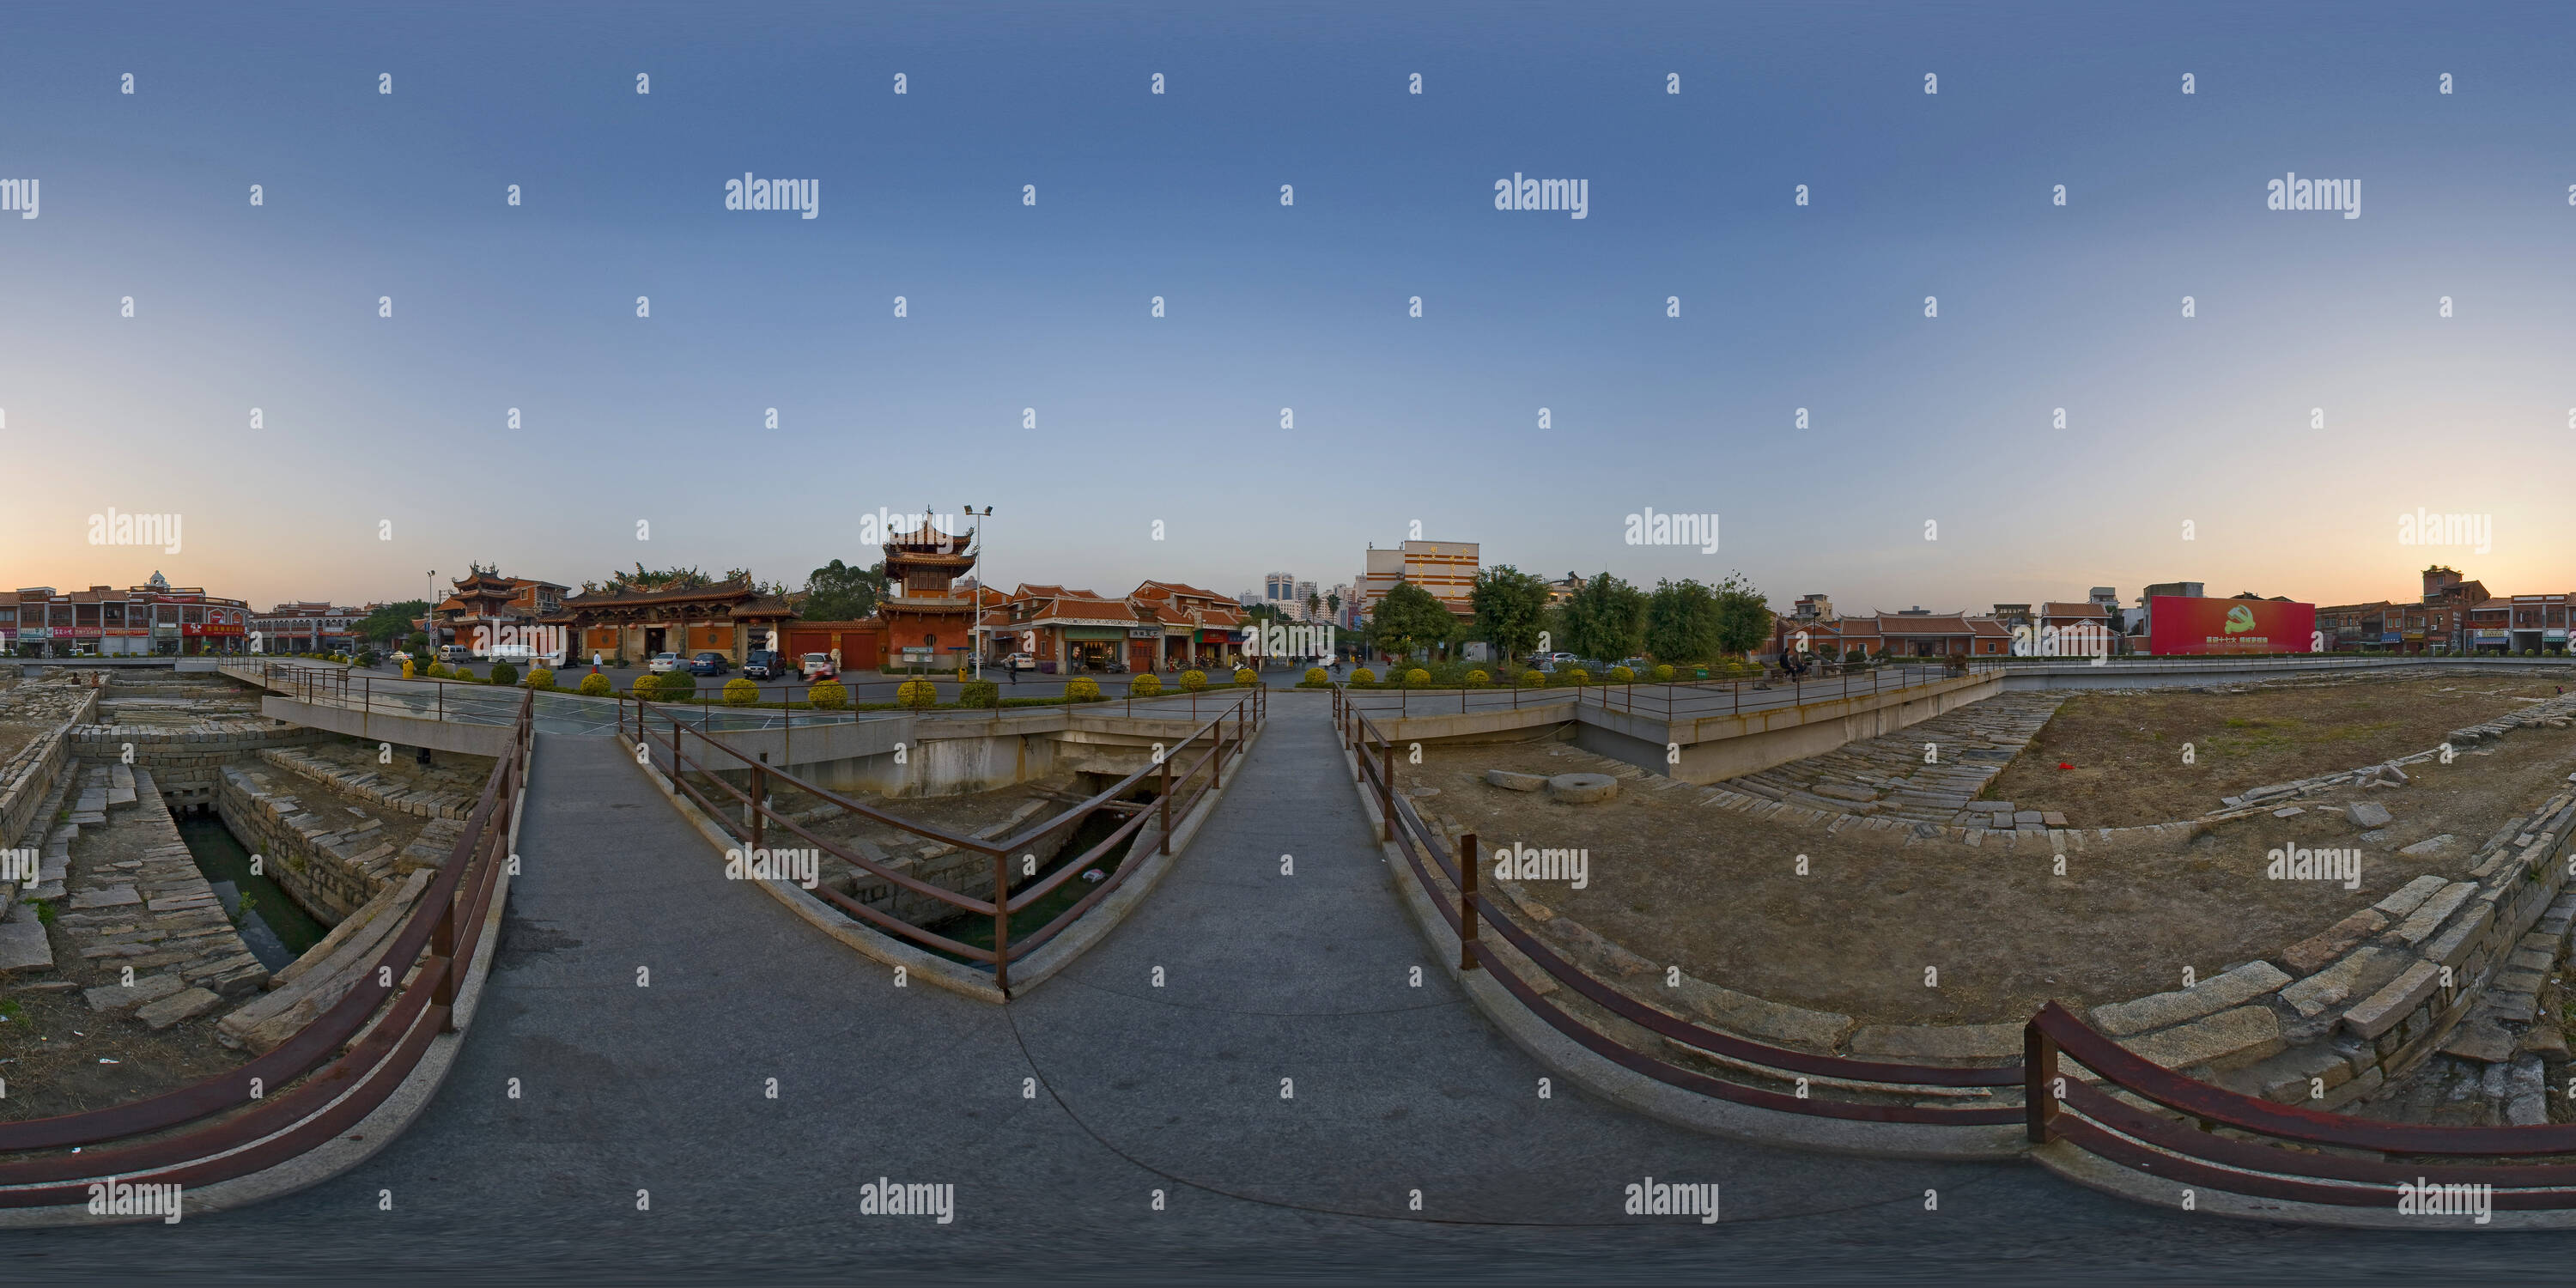 City Of South Gate >> 360 View Of South Gate Site Of The Ancient City Of Quanzhou